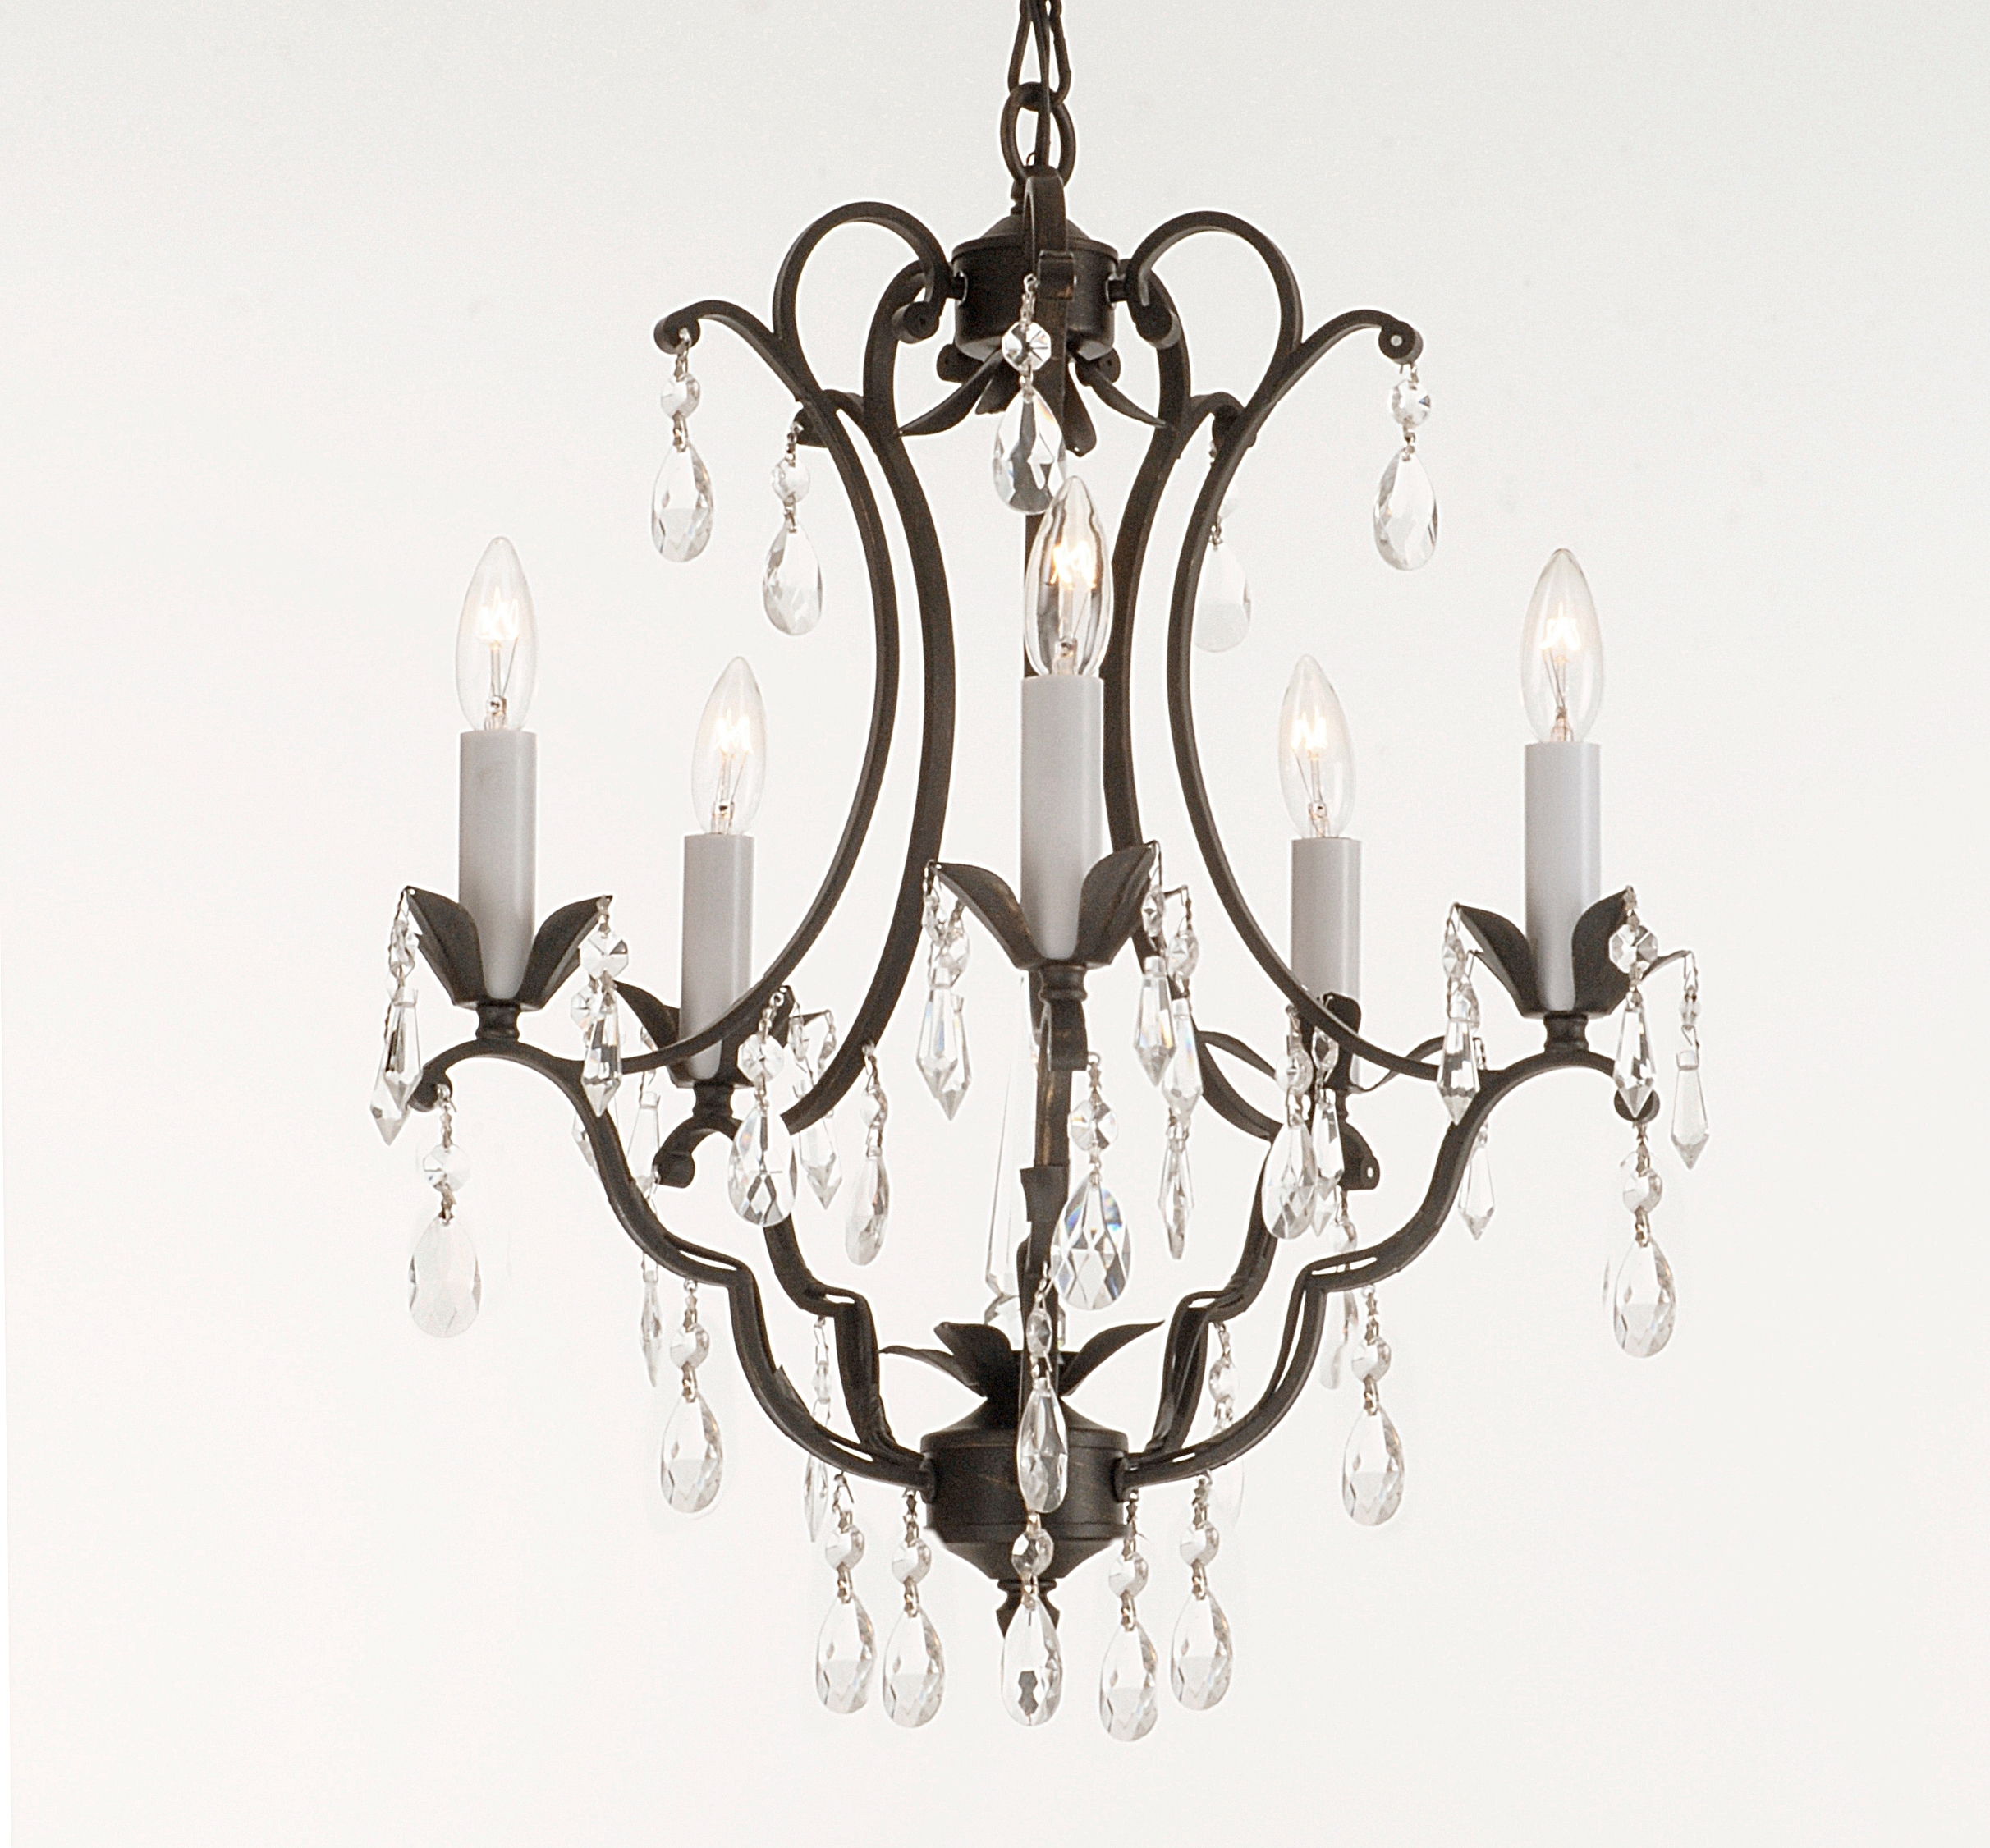 Best And Newest Antique Looking Chandeliers For Light : Furniture Vintage Look Modern Black Wrought Iron Chandeliers (View 9 of 20)